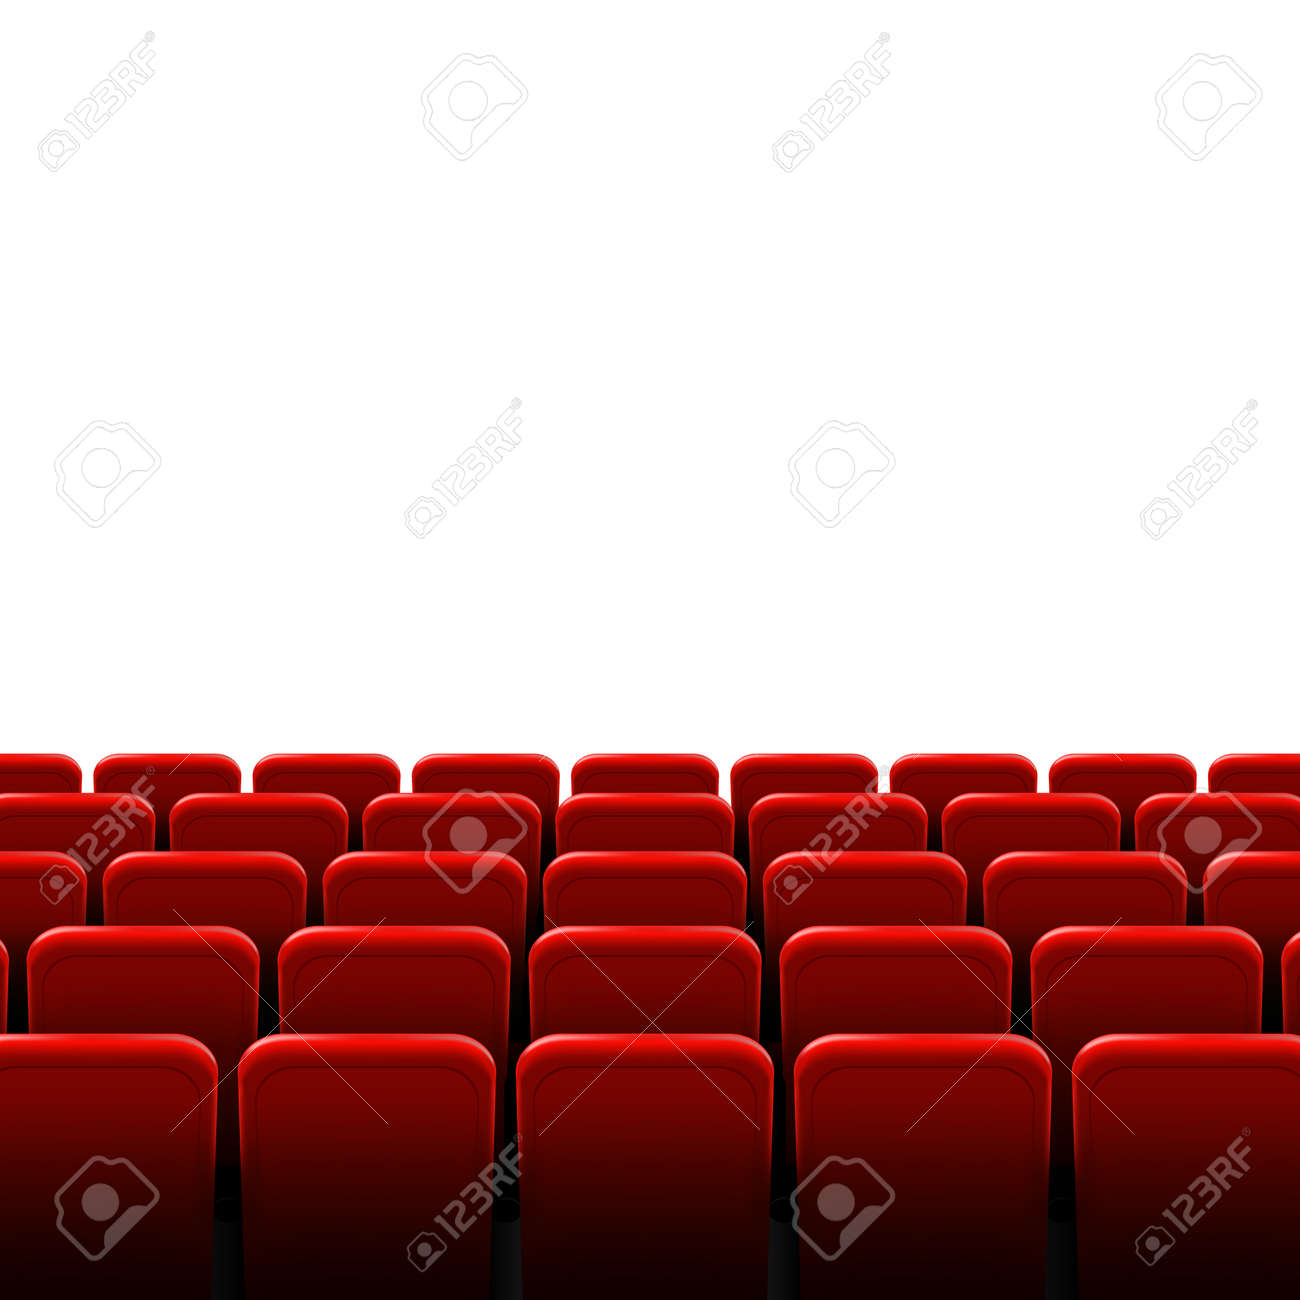 Creative illustration of movie cinema screen frame and theater interior. Art design premiere poster background, lights and rows red seats. Abstract concept graphic scene element. - 121272091